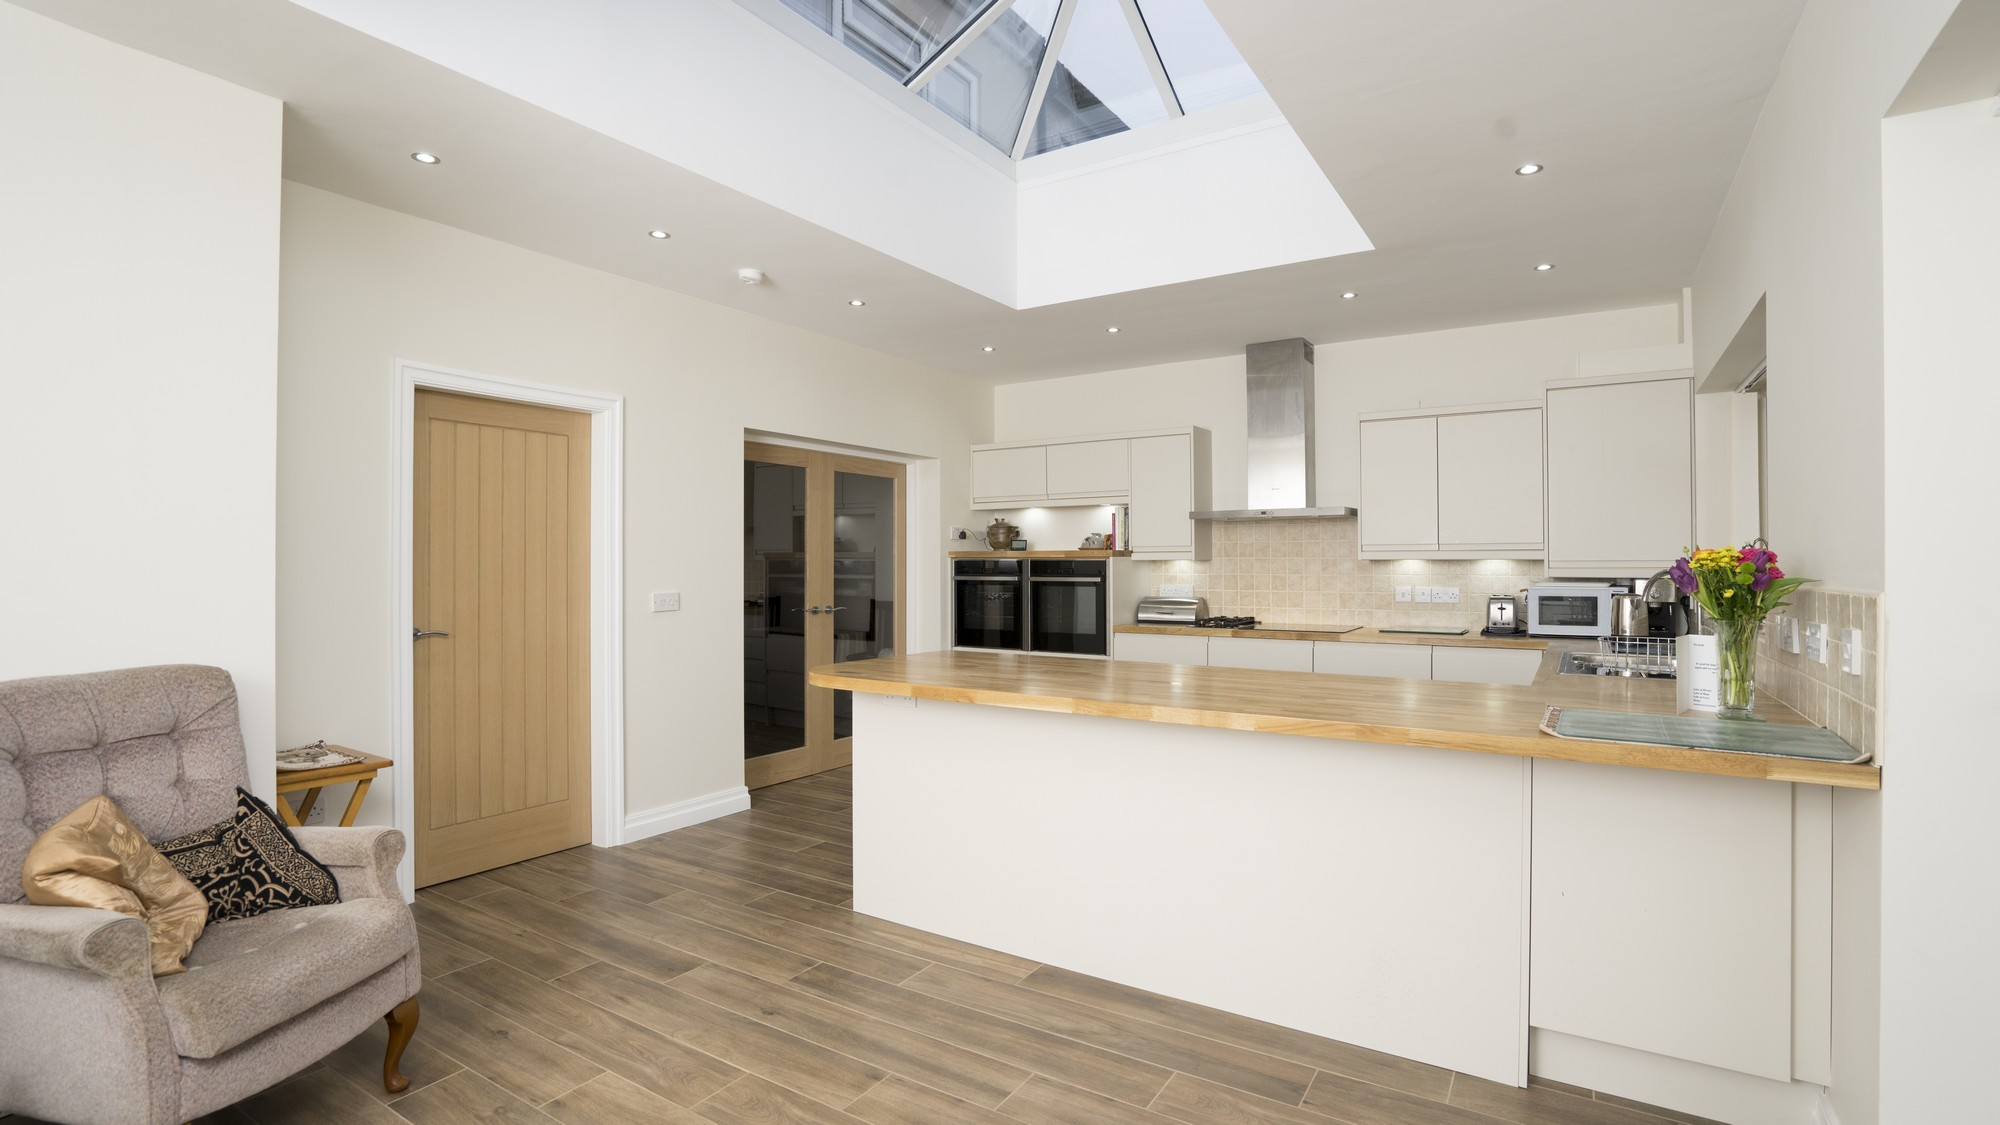 Overview of handleless kitchen in Wavertree, Liverpool featuring gloss cream doors and oak block worktops.